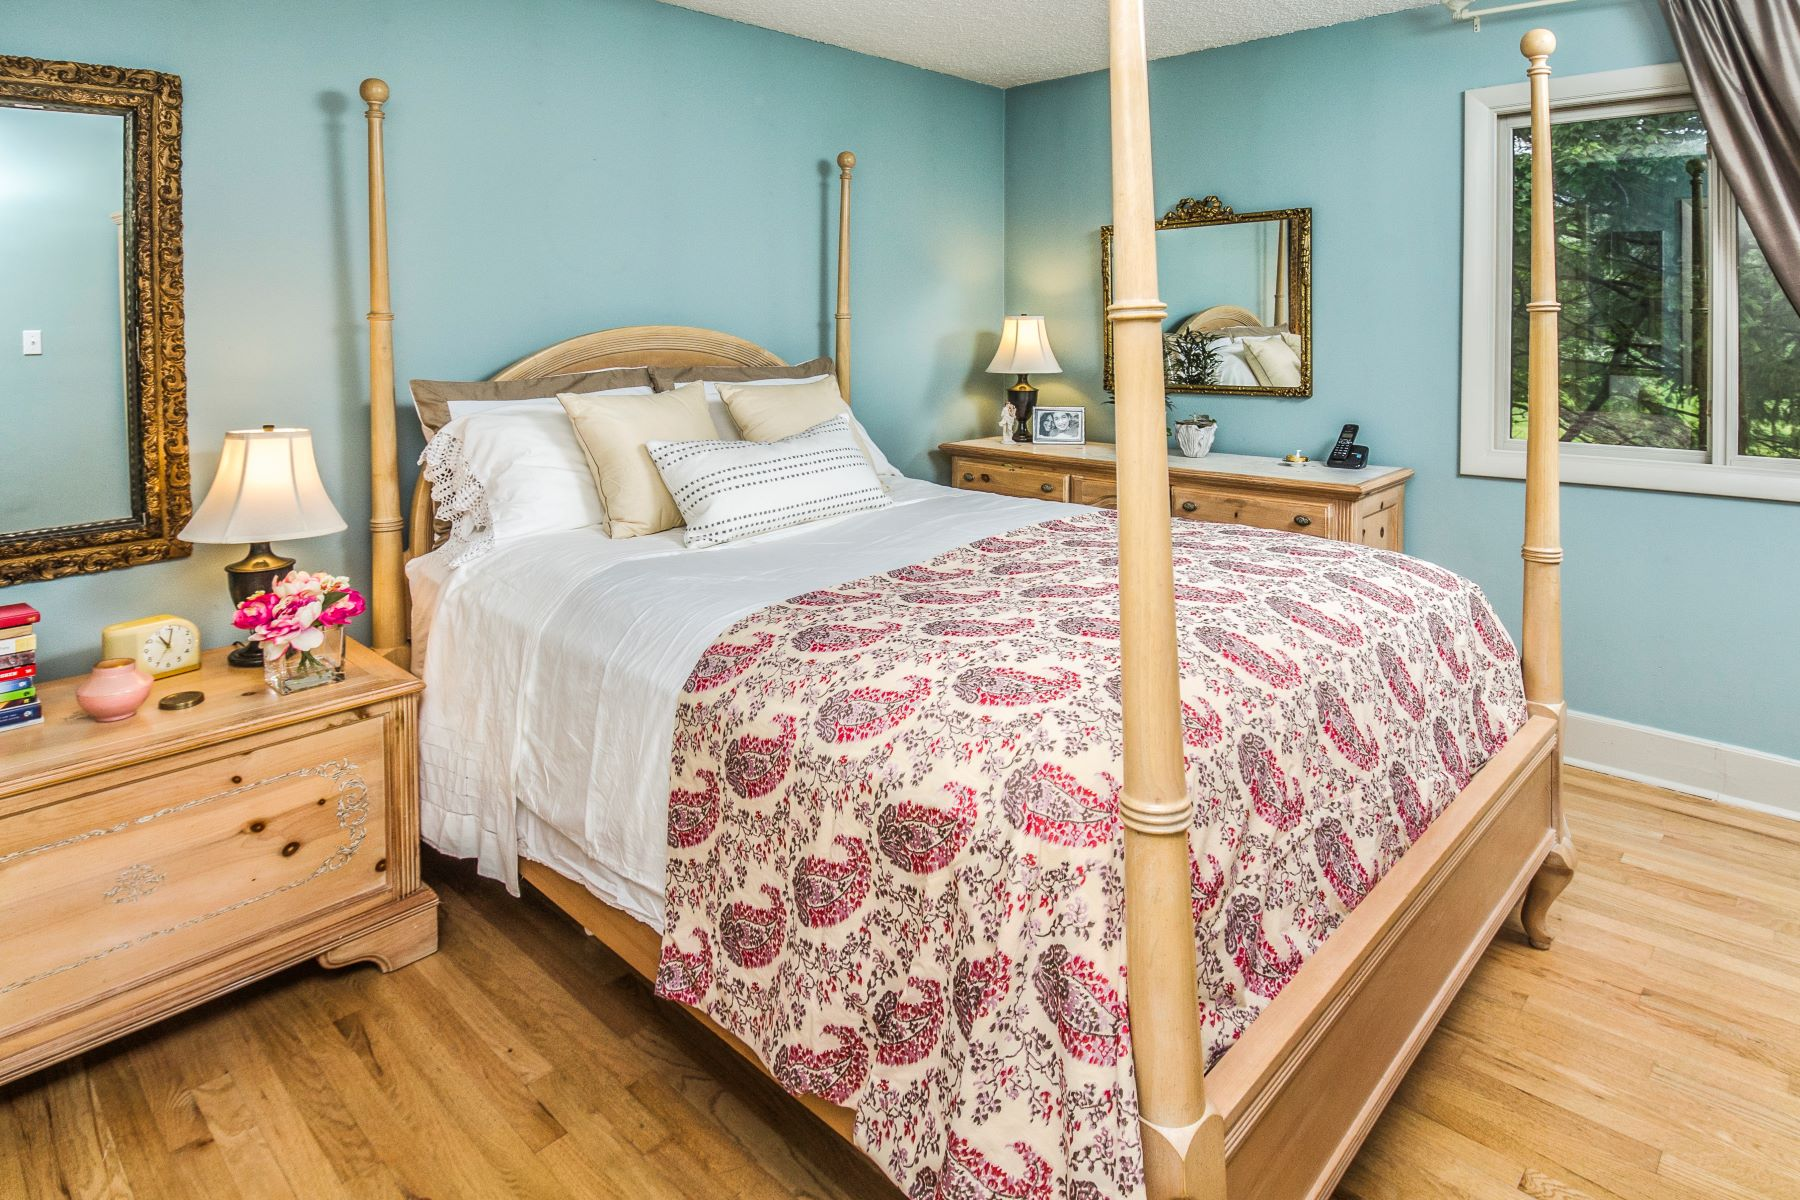 Additional photo for property listing at Beautifully Appointmented Newport With Loft 1404 Ravens Crest Drive East, Plainsboro, ニュージャージー 08536 アメリカ